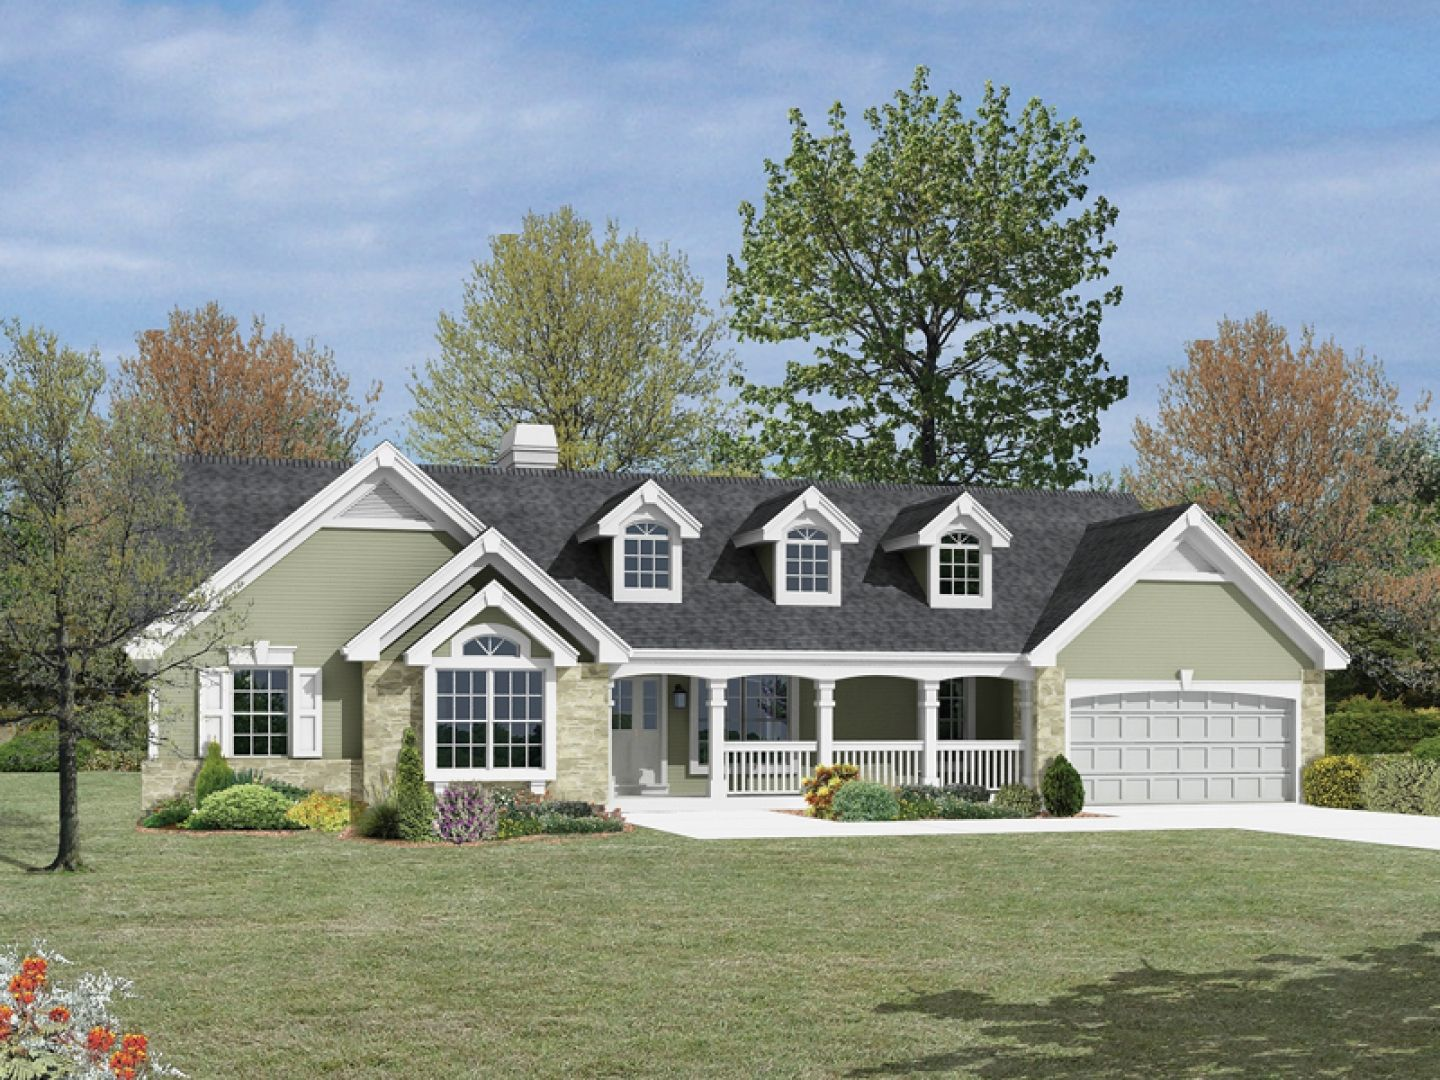 Southern style house plans with wrap around porches for House plans for rural properties